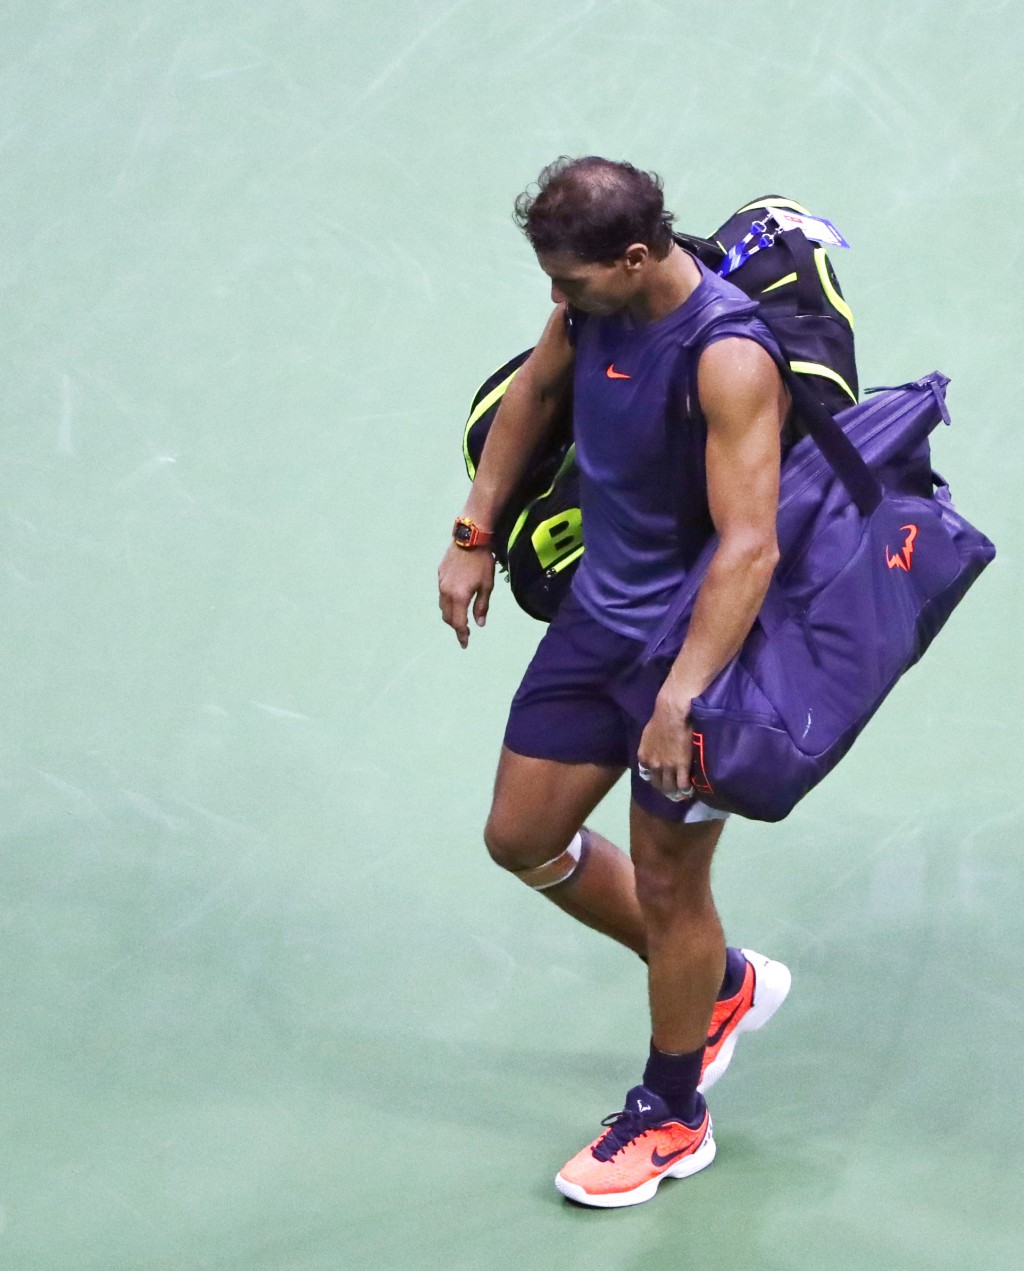 Rafael Nadal, of Spain, leaves the court after retiring from a match against Juan Martin del Potro, of Argentina, during the semifinals of the U.S. Op